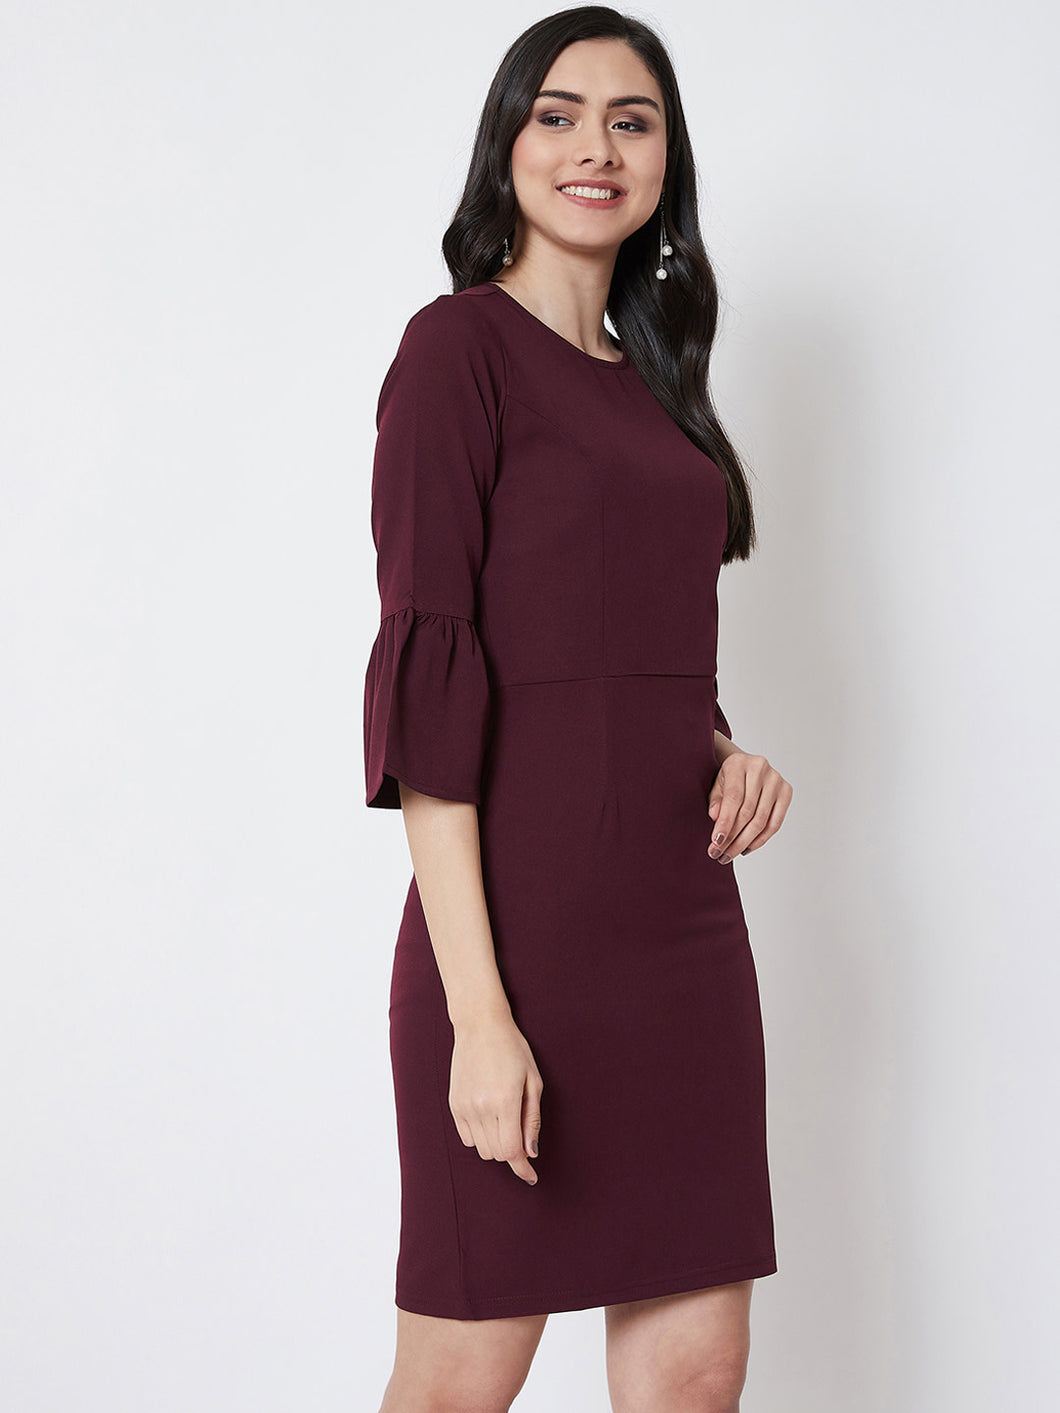 Queen ellie Women Burgundy Solid Sheath Dress